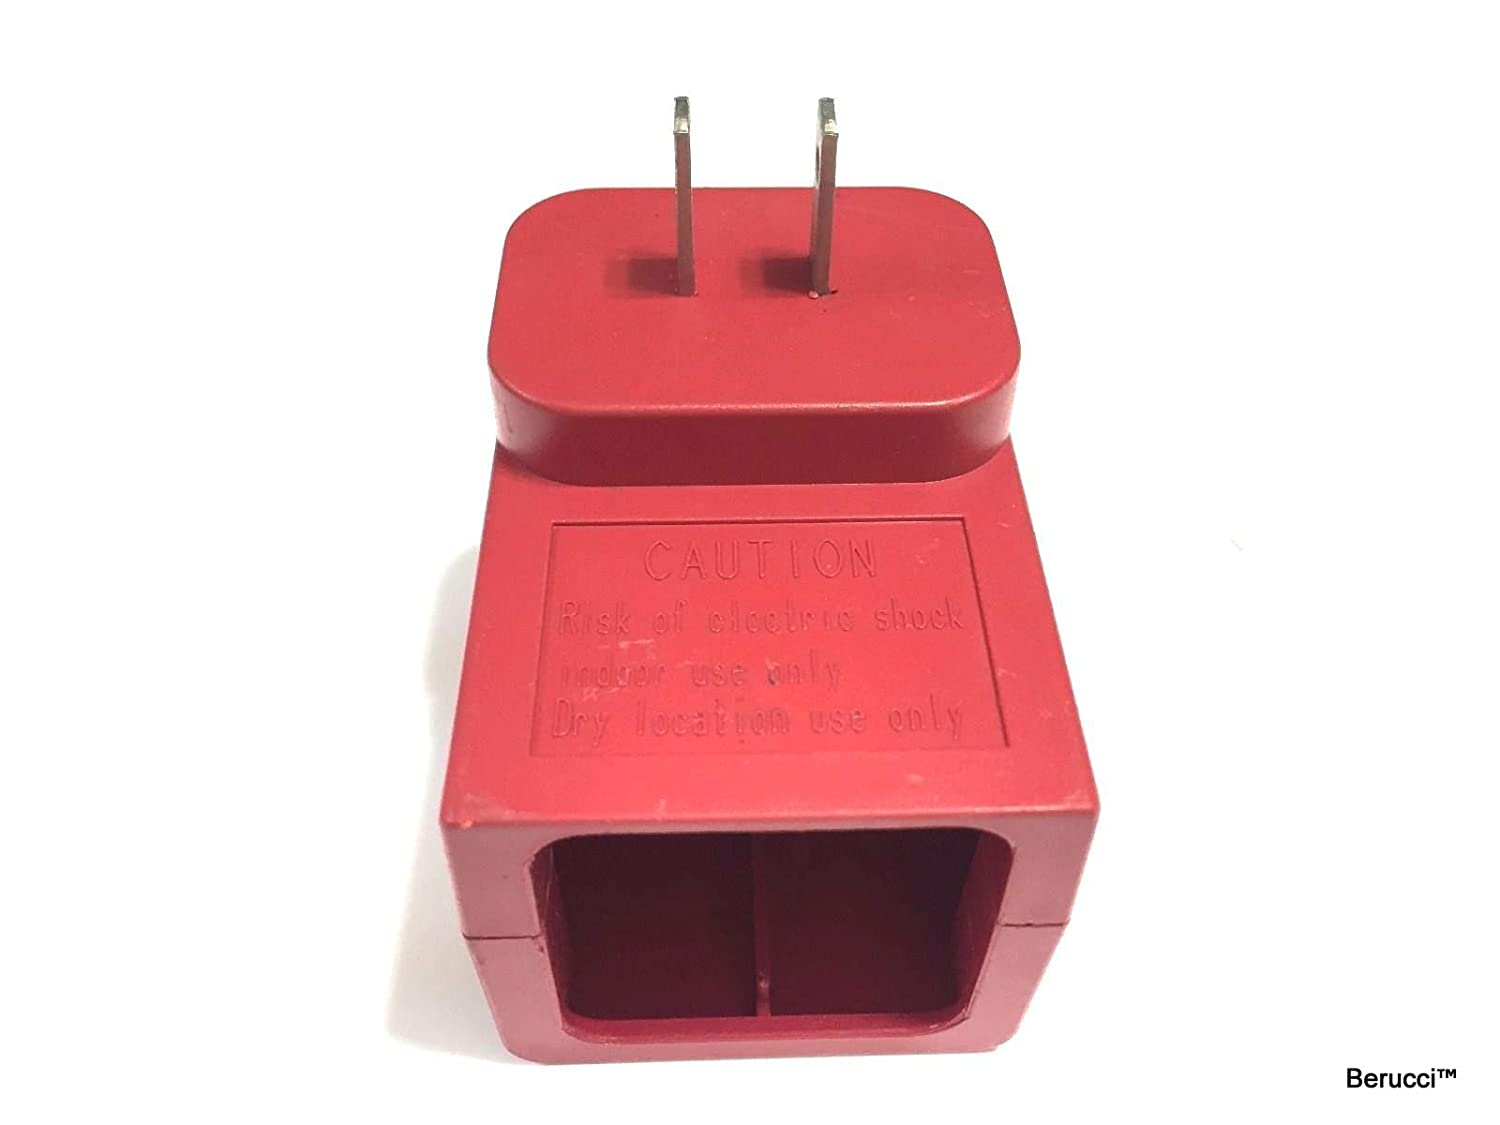 BerucciTM Red 7.2V Charger for Swivel Sweeper G1 G2 G3 Max